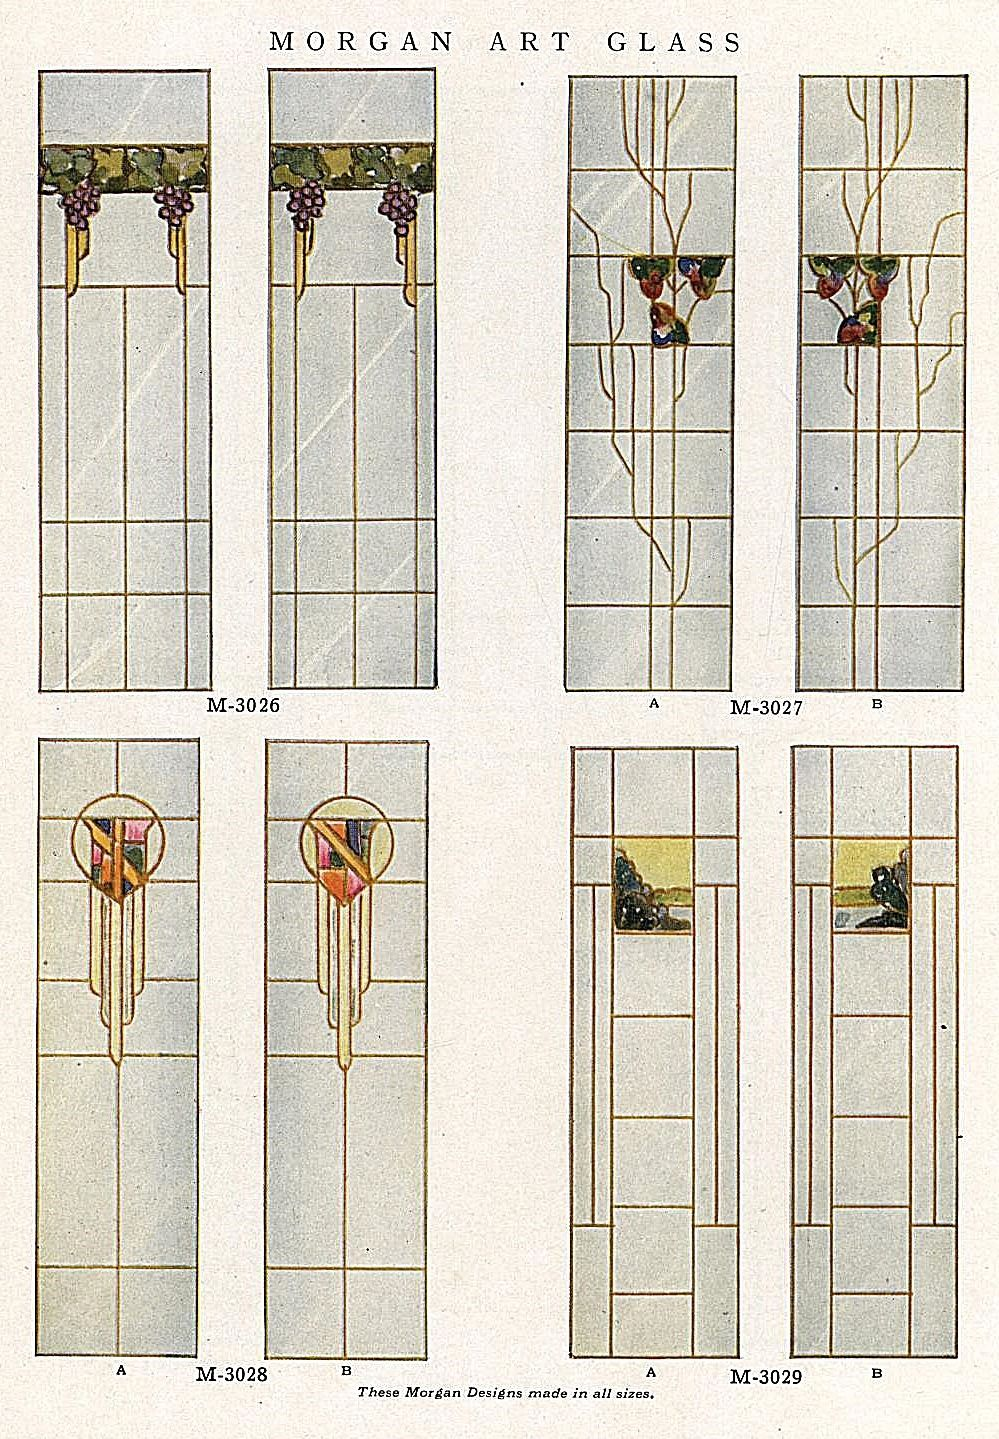 Stained Glass window designs, 1921